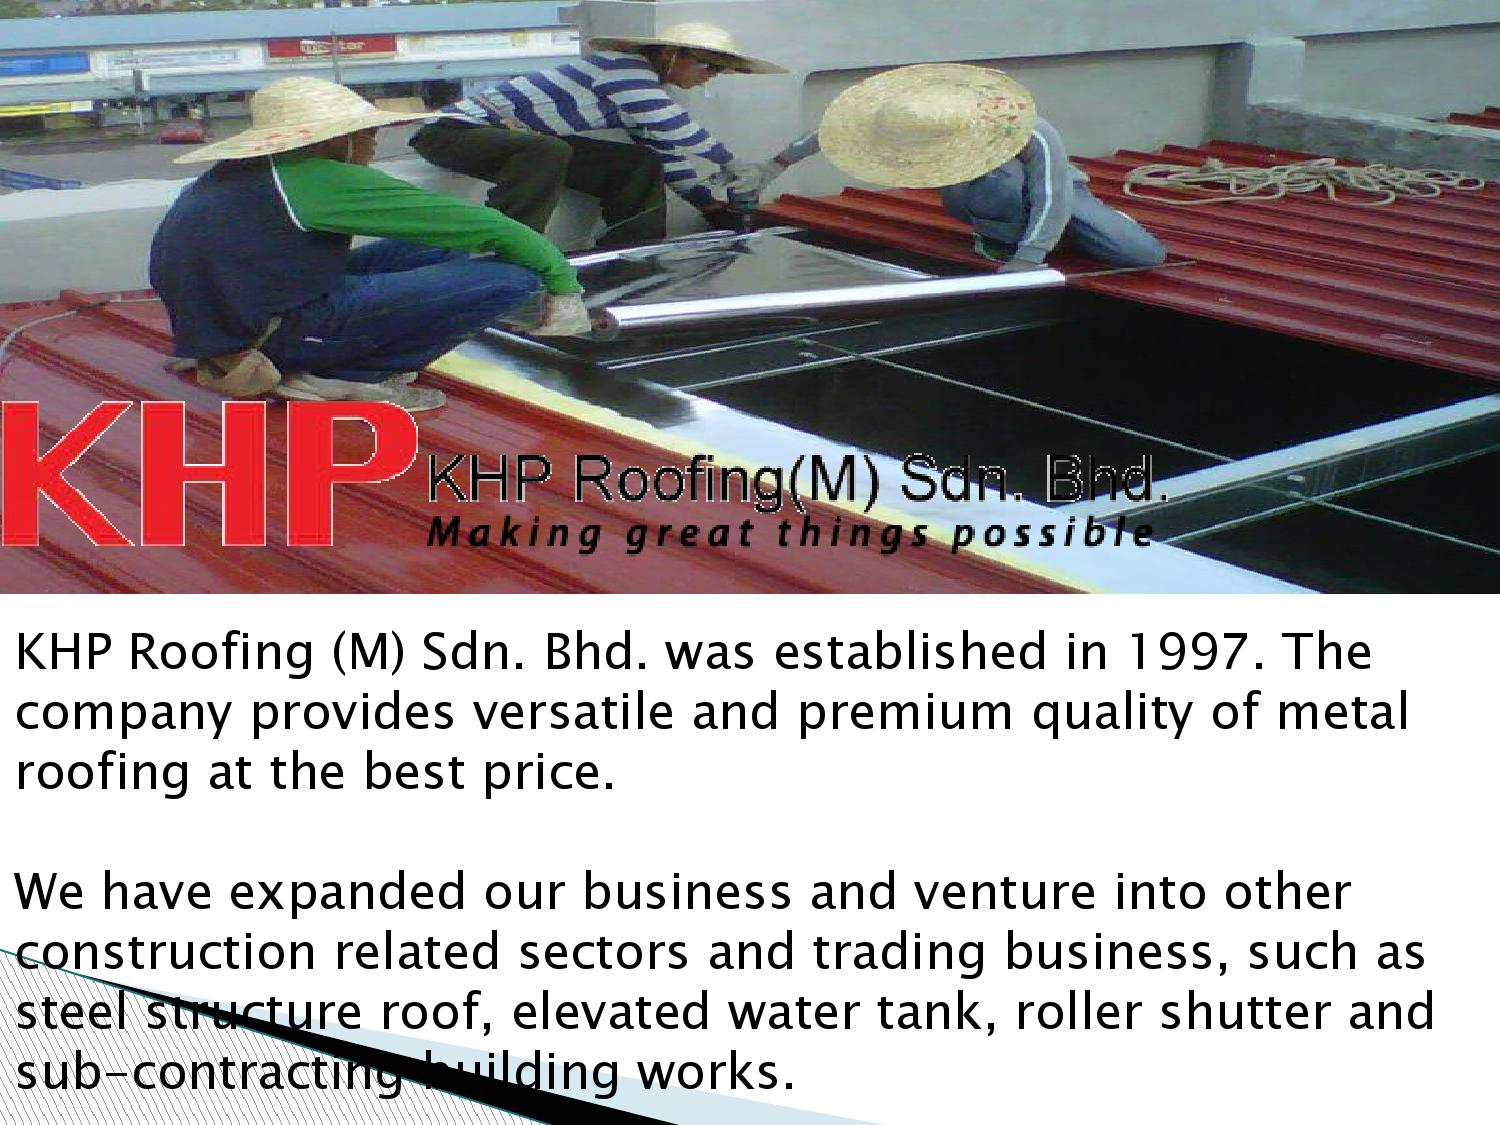 Metal Sheet Roofing Malaysia : Khproofing com my by Khp